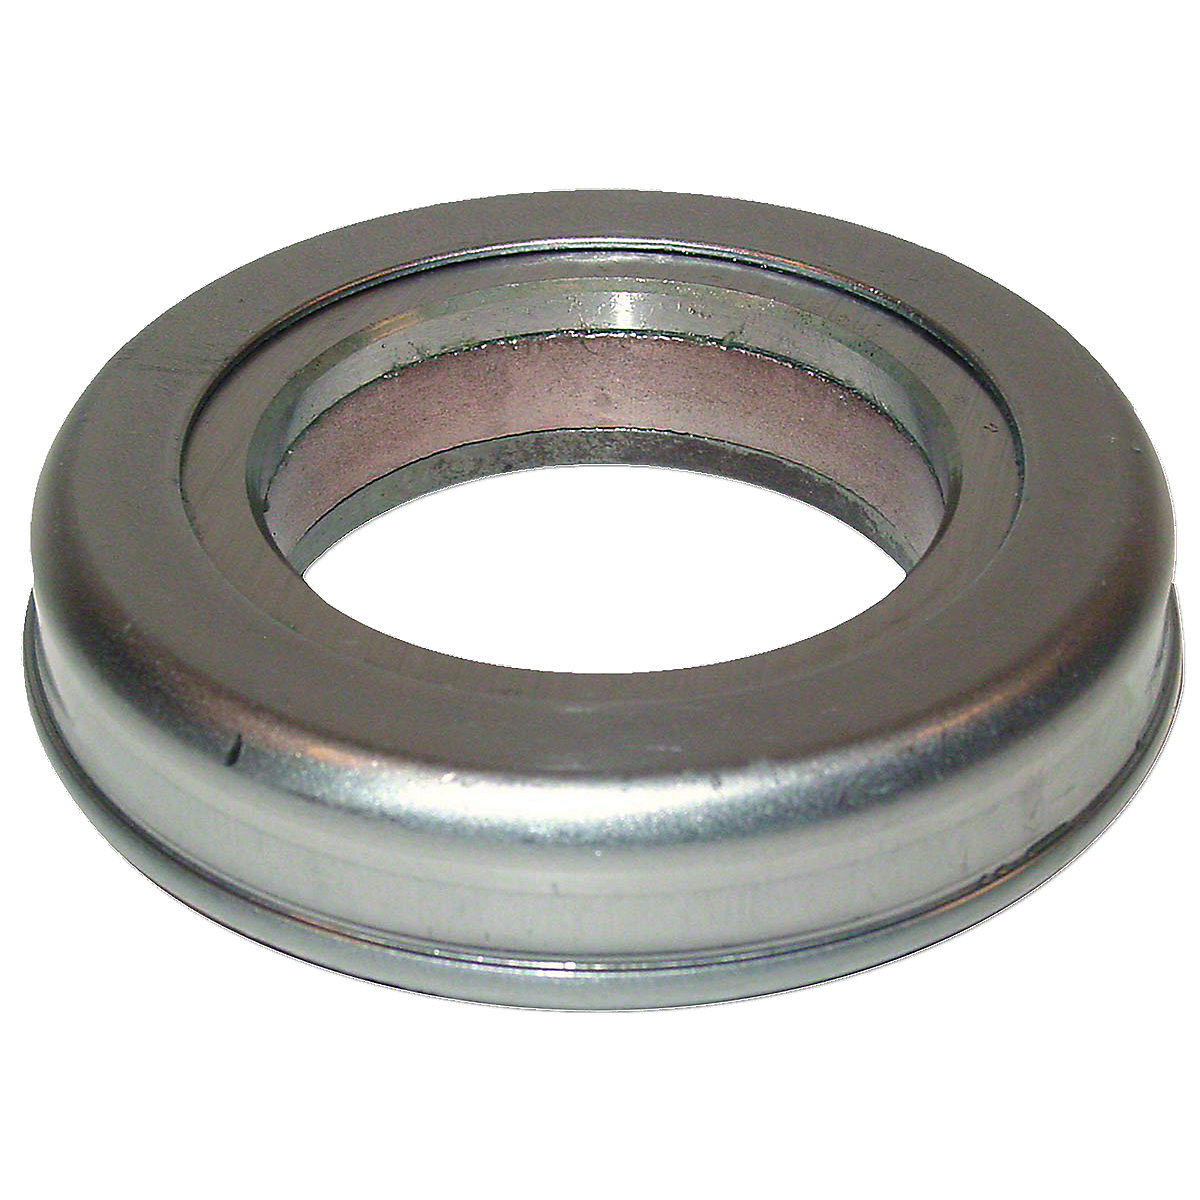 Clutch Throw Out Bearing For Massey Ferguson: TE20, TEA20, TO20, 303, Massey Harris: 101 Sr, 102 Sr, 44, 44-6, 444, 44 Special, 55, 555.